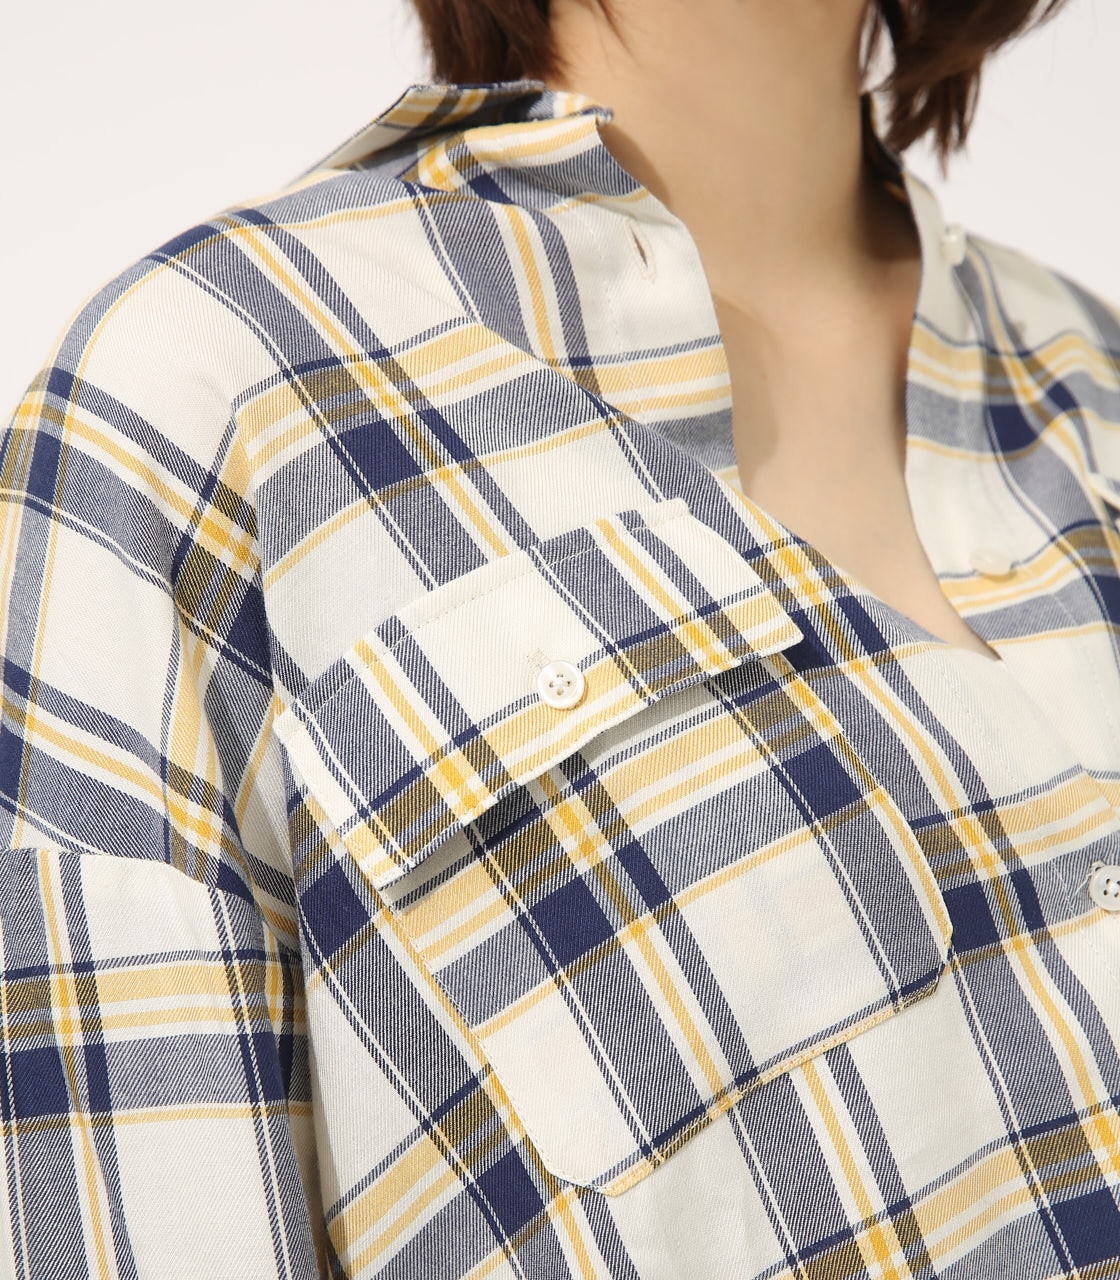 【AZUL BY MOUSSY】MADRAS CHECK SHIRT【MOOK50掲載 90135】 詳細画像 柄WHT 9